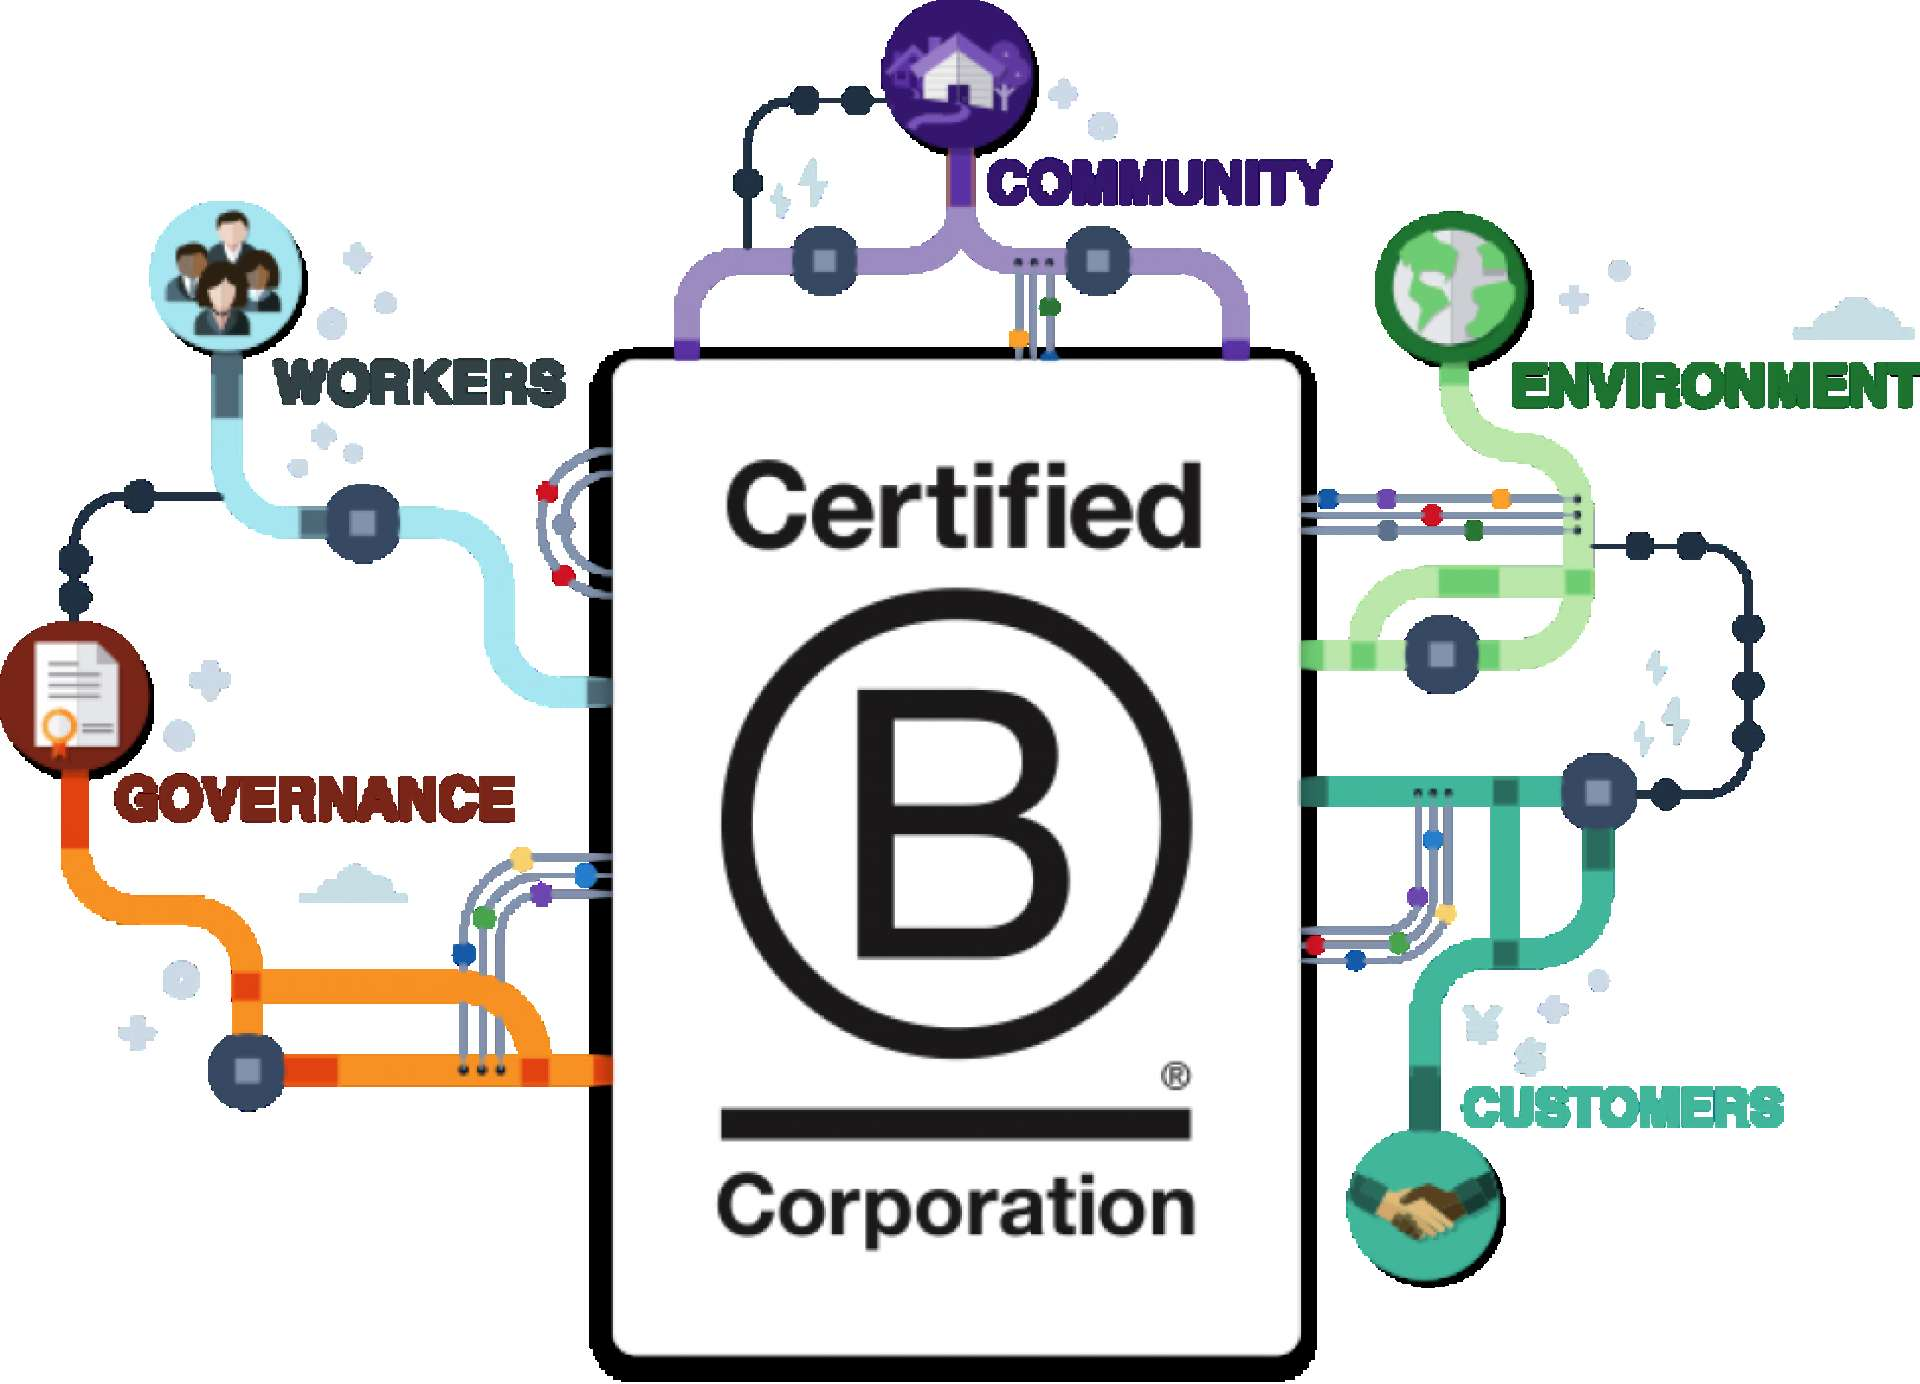 B Corp Graphic, showing key categories of workers, environment, governance, and customers.